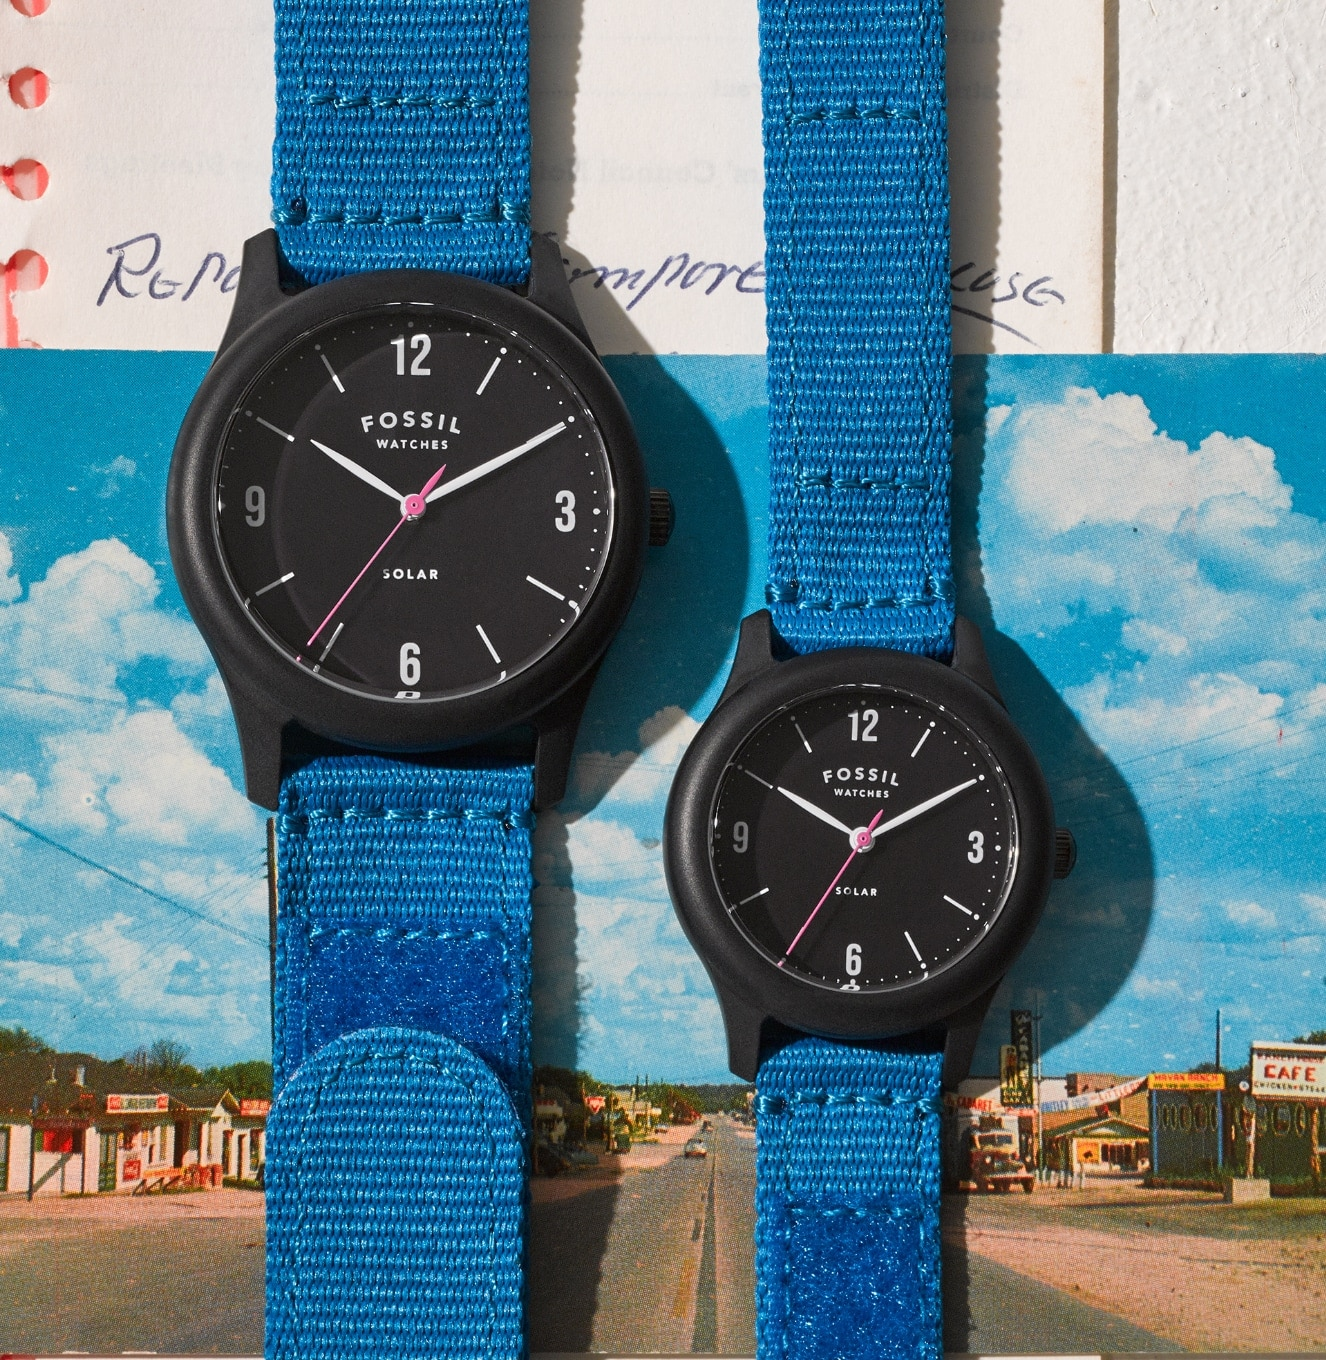 Two Limited Edition Solar Watches on a postcard.